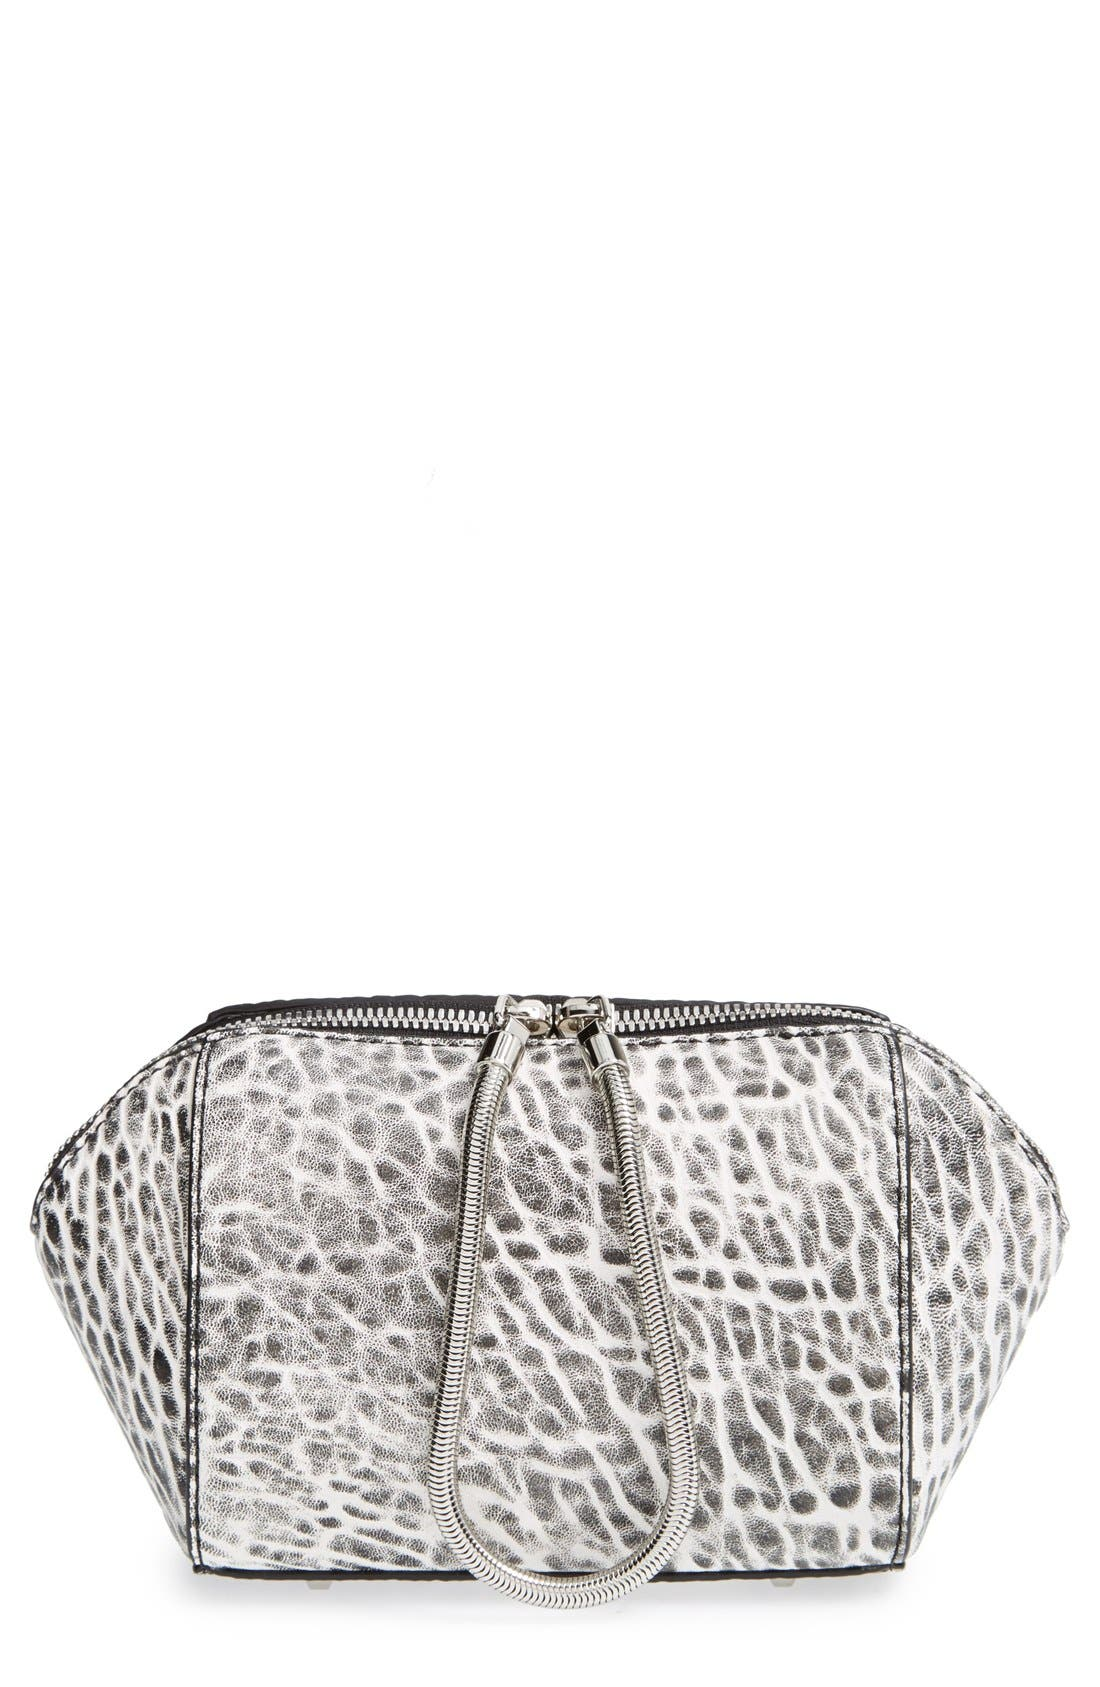 'Chastity' Clutch,                             Main thumbnail 1, color,                             001